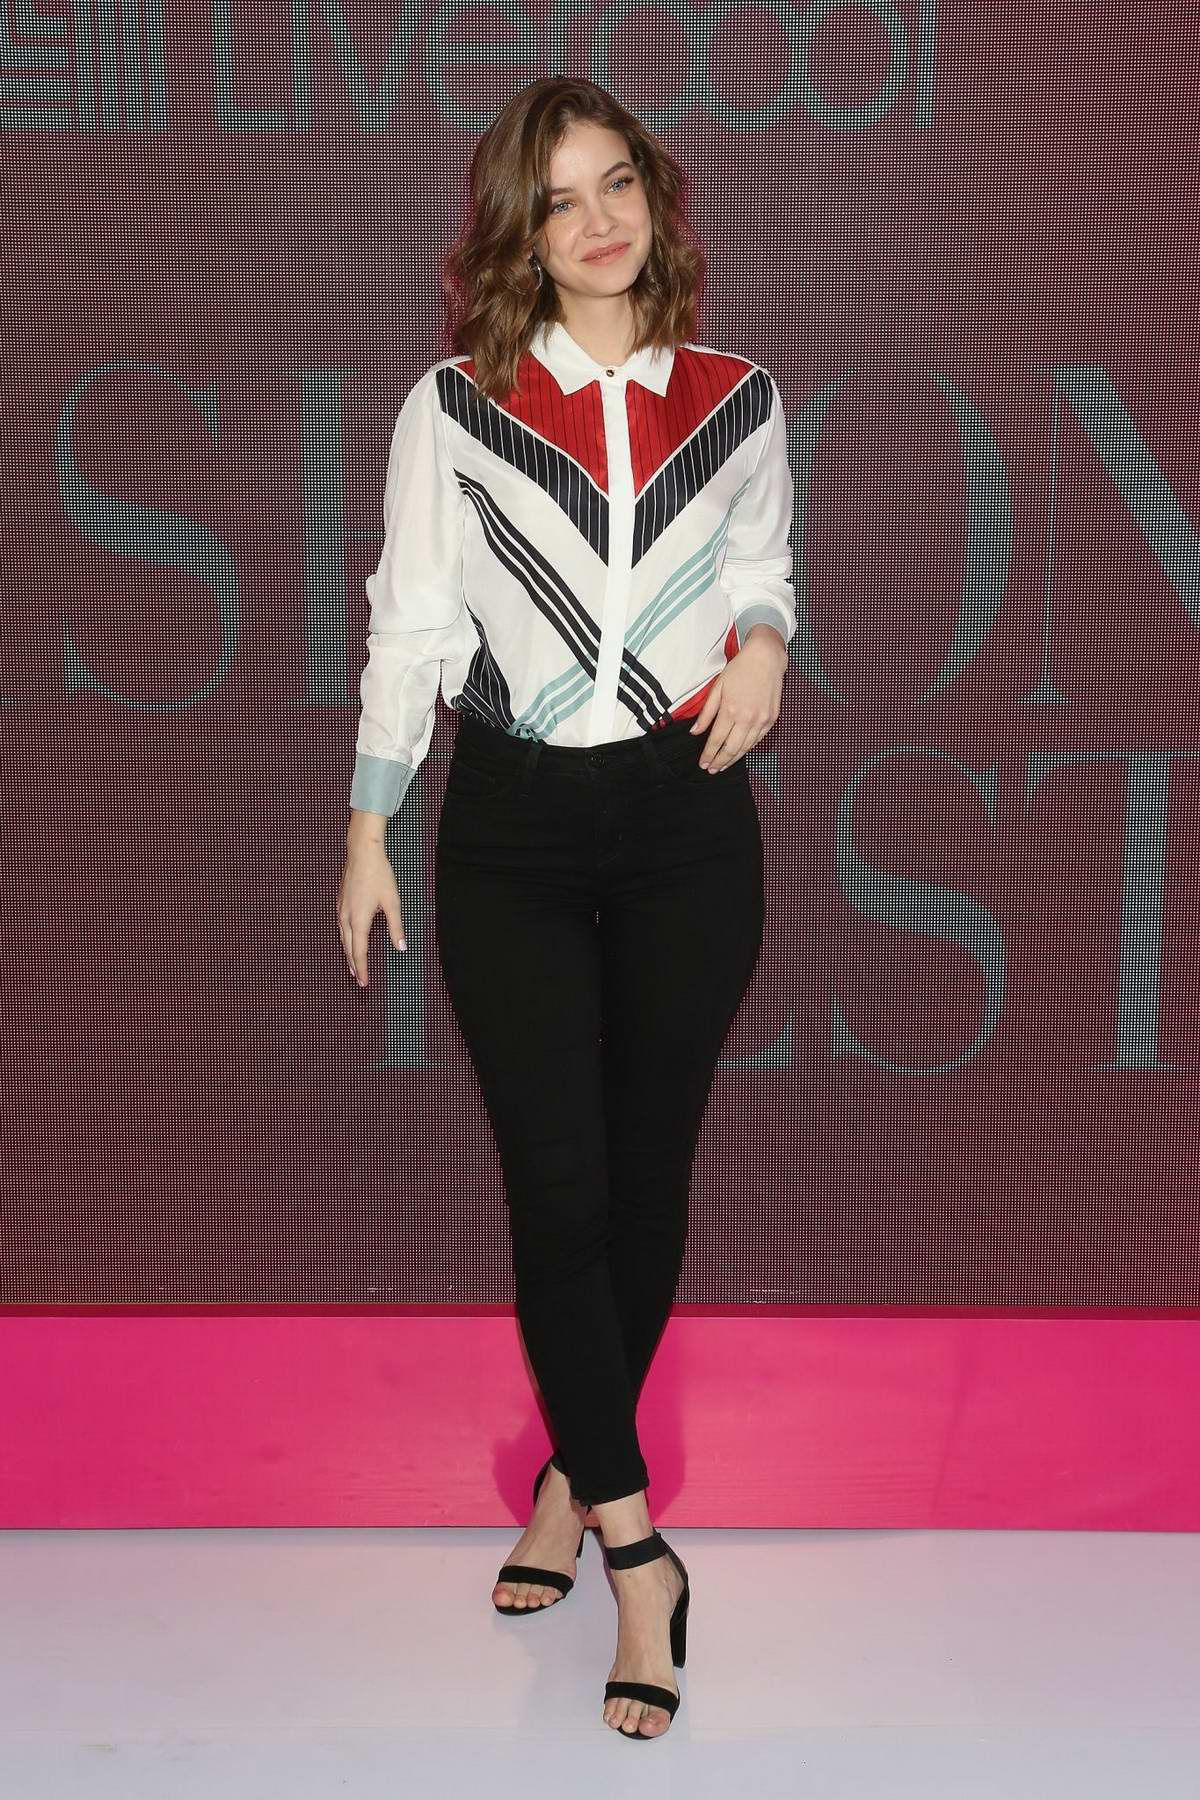 Barbara Palvin attends a press conference during the Liverpool Fashion Fest SS 2019 in Mexico City, Mexico